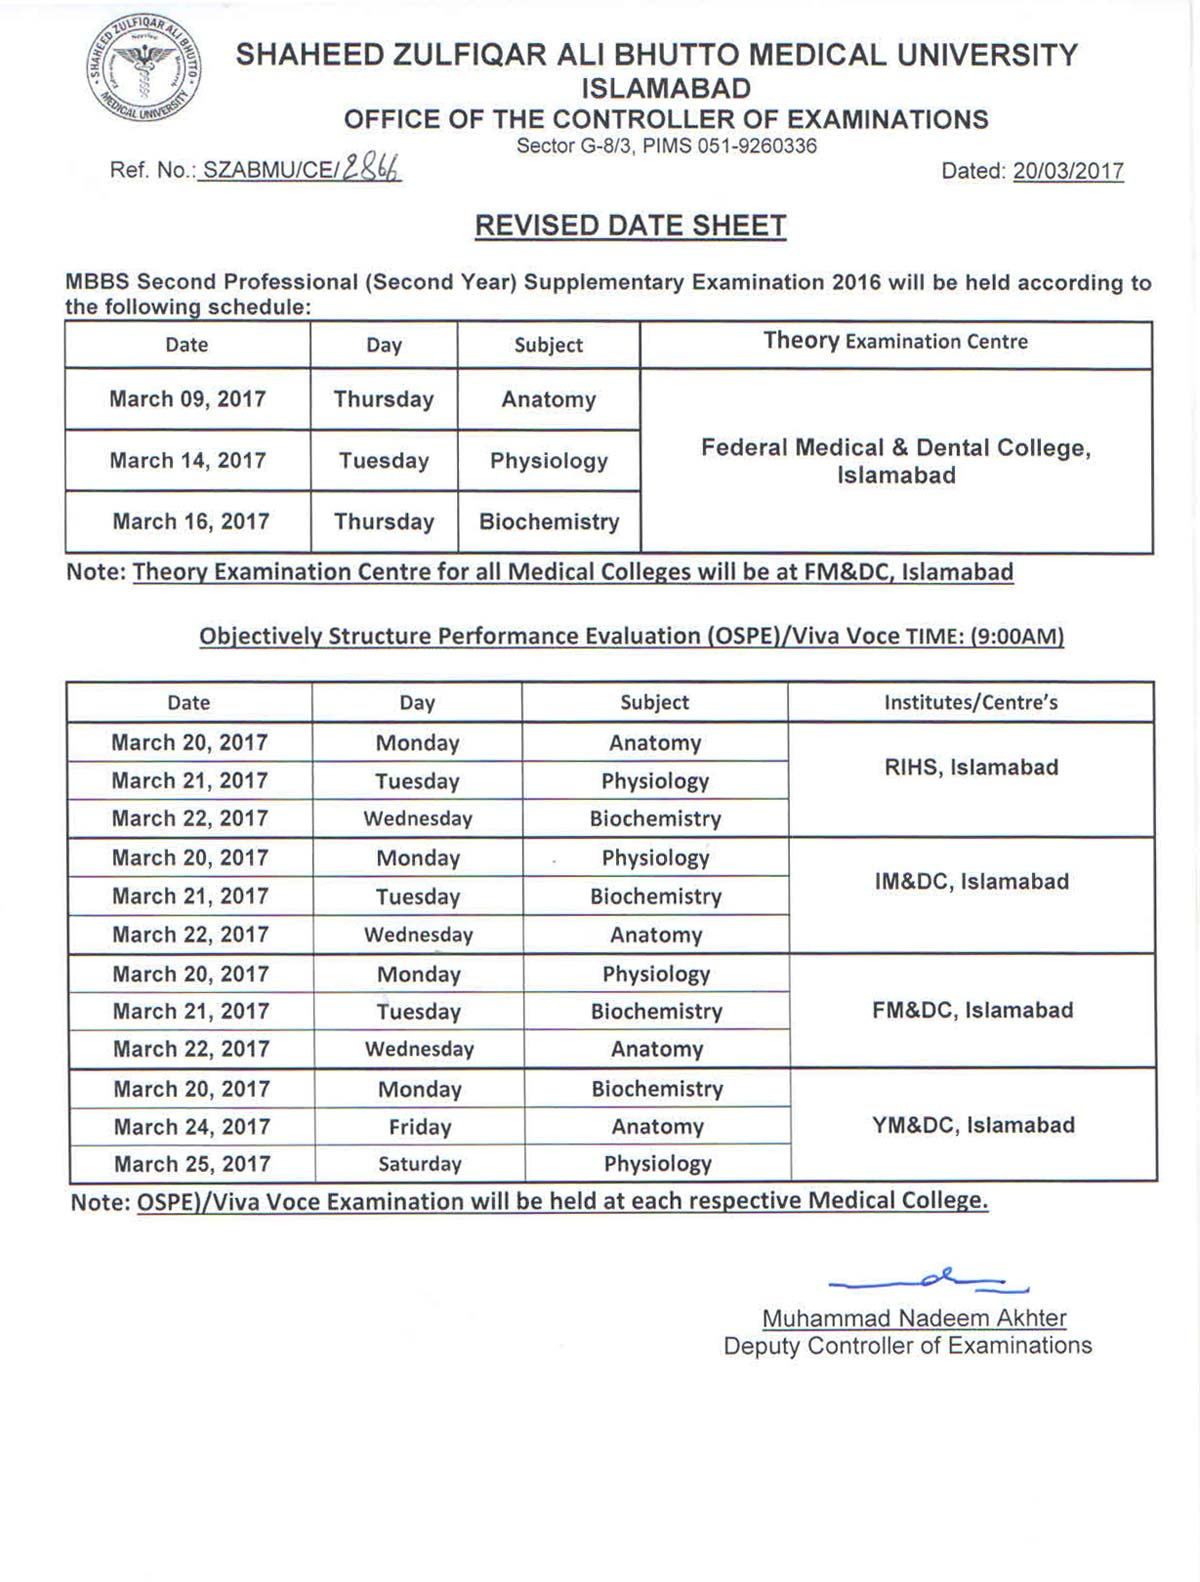 Revised Date Sheet - MBBS 2nd Professional Supplementary Exams 2016